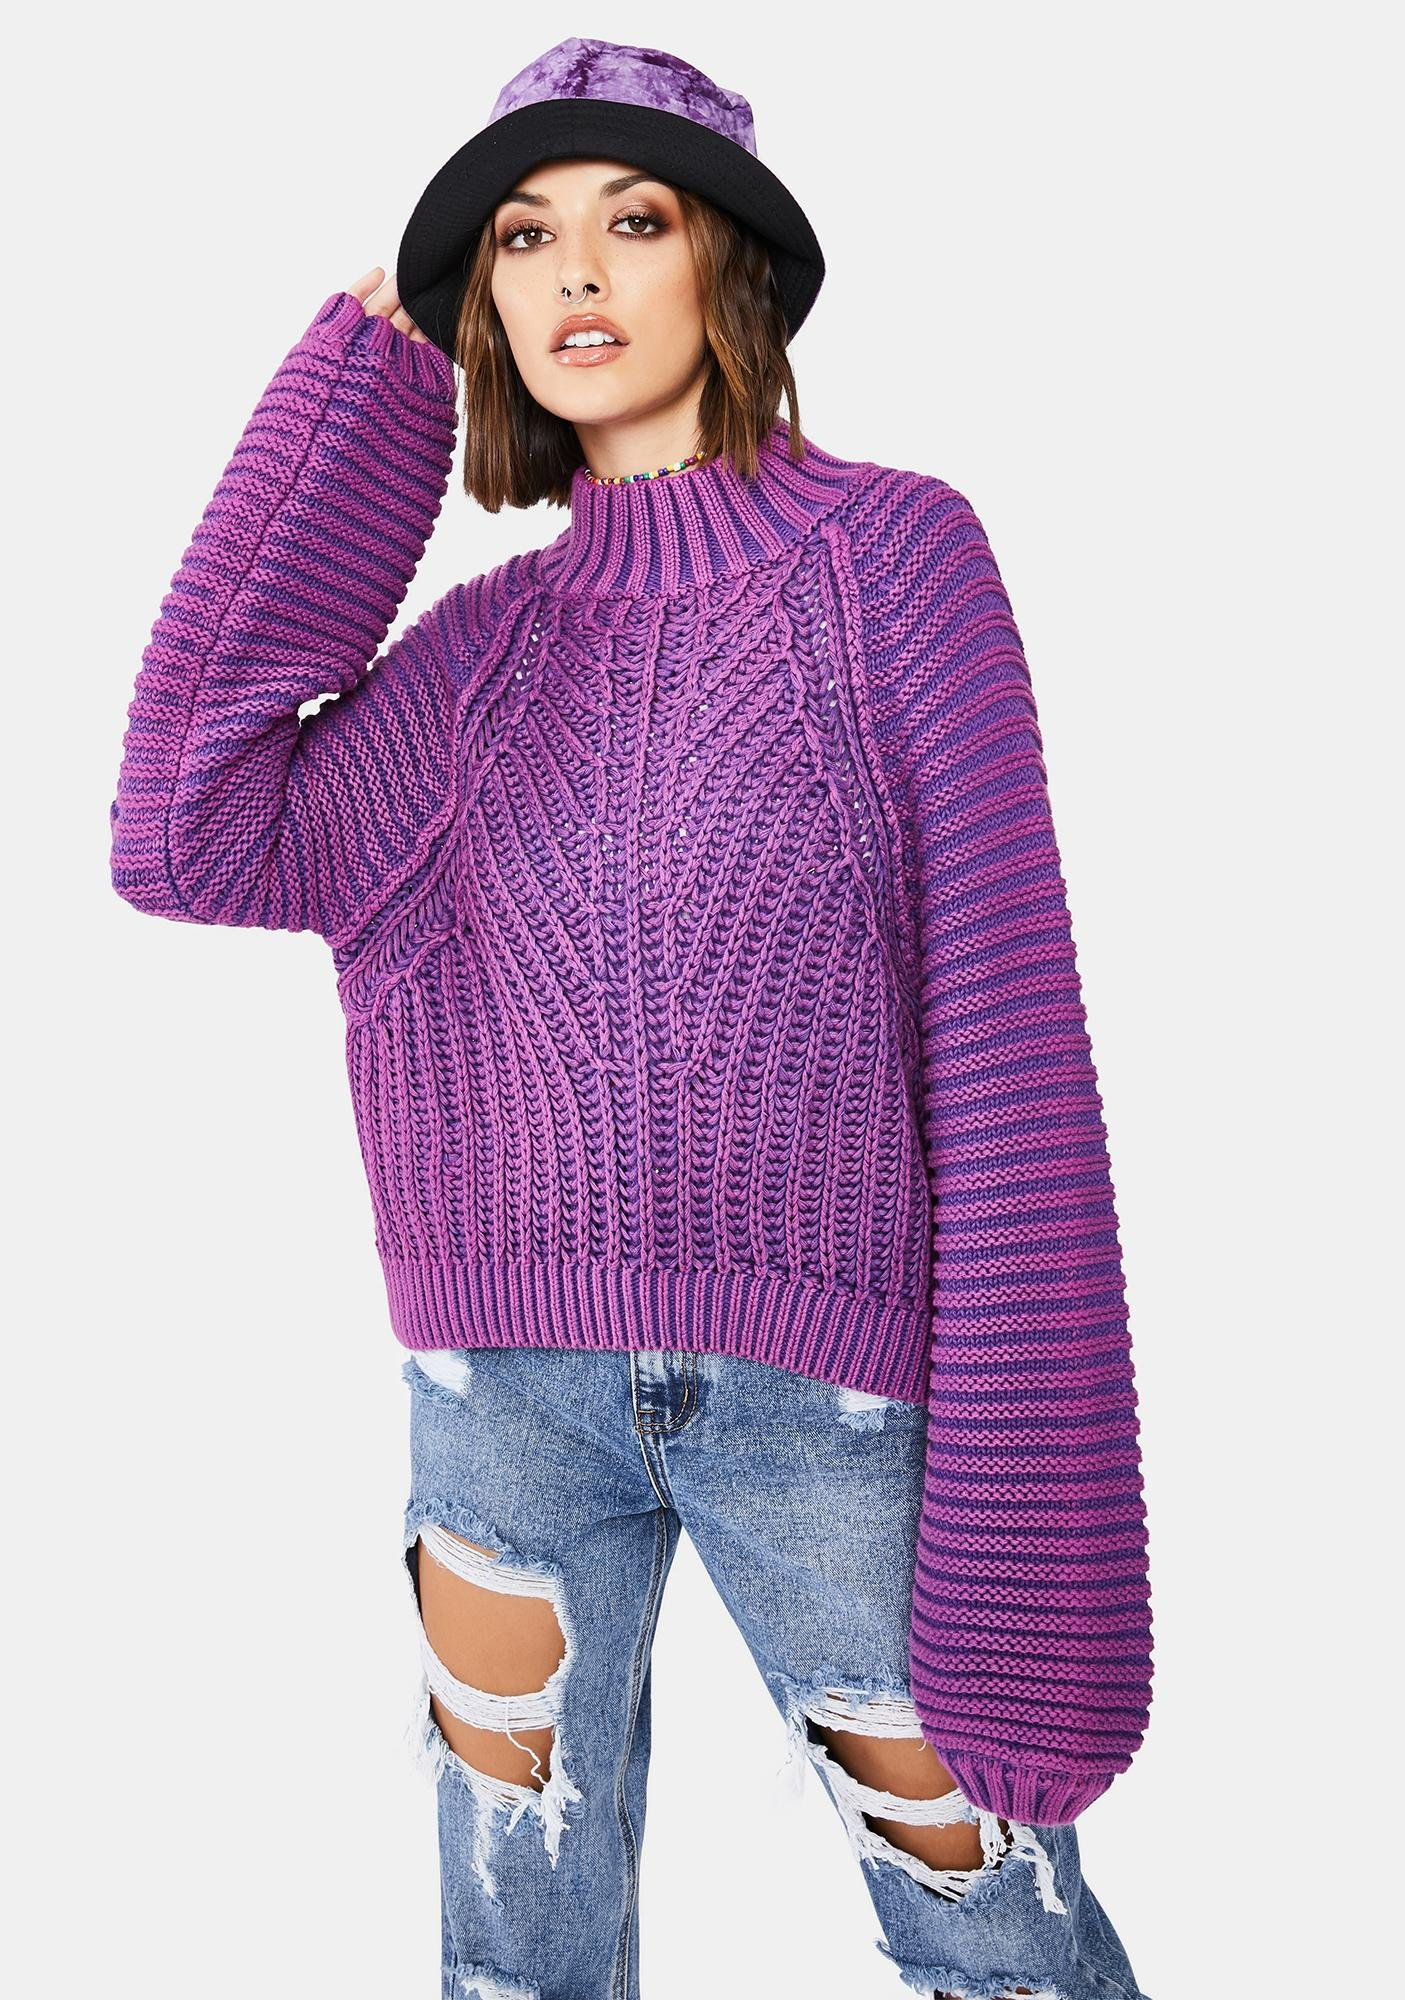 Free People Glowing Orchid Sweetheart Knit Sweater